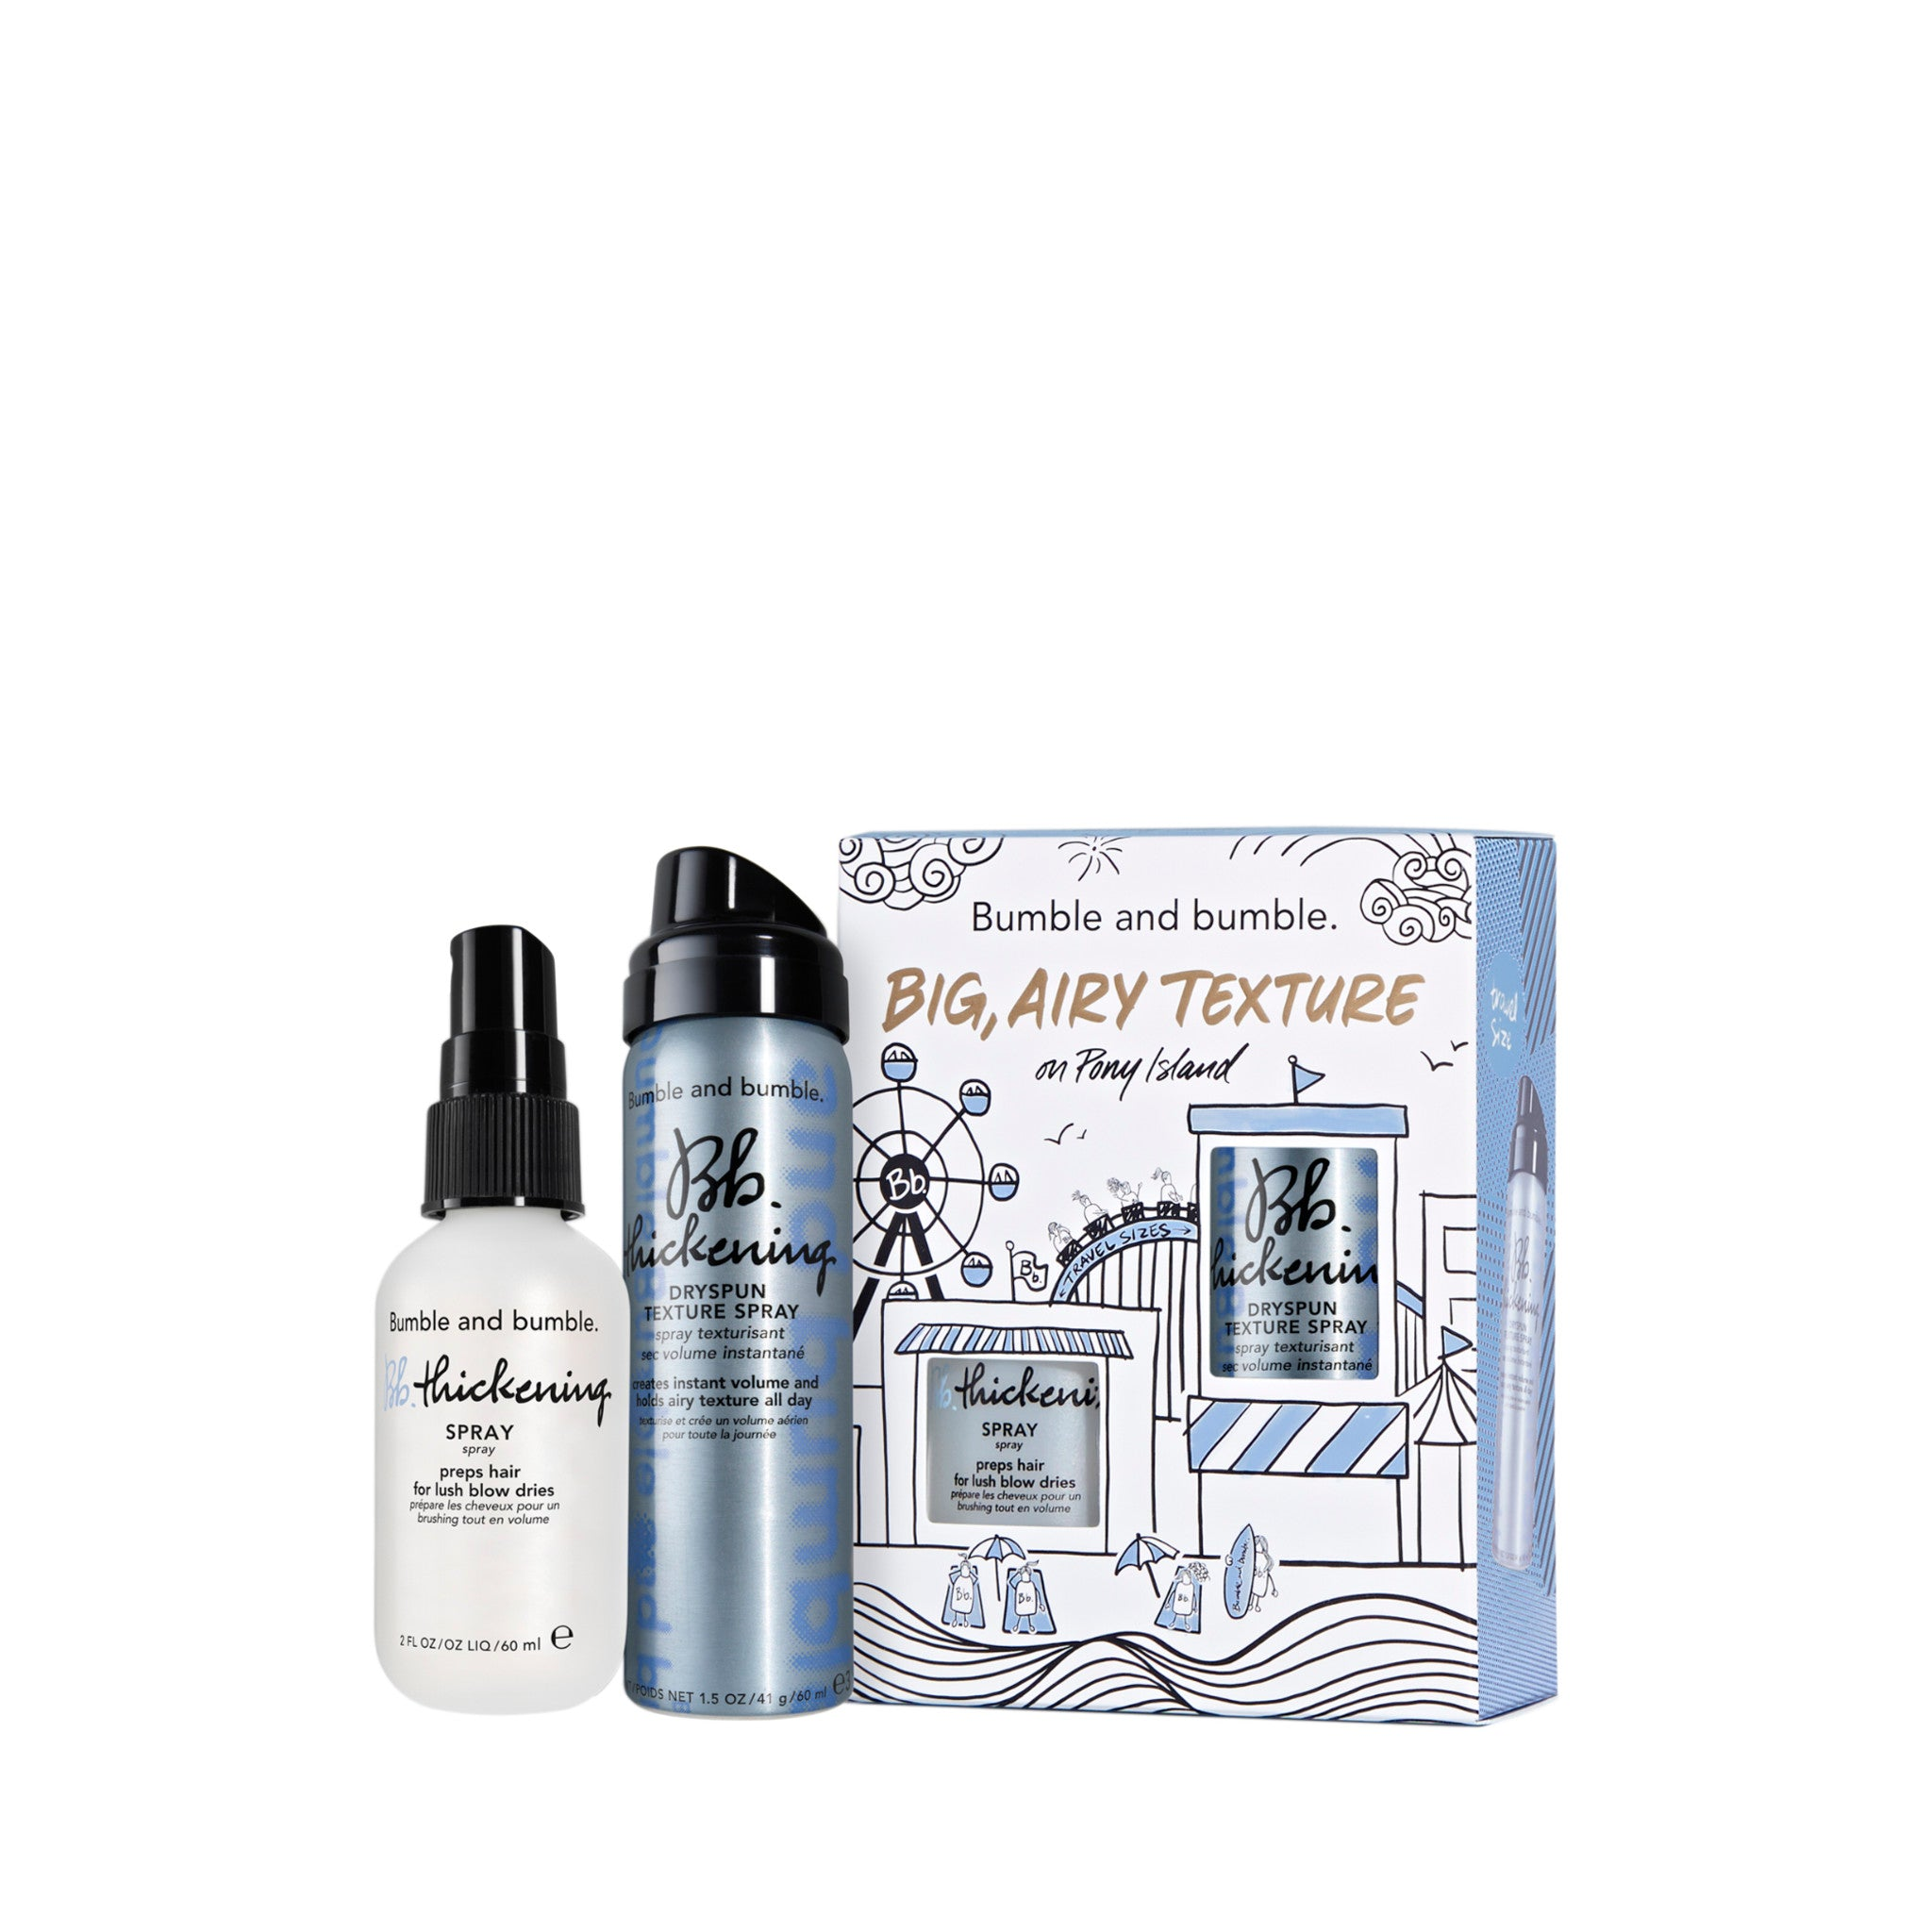 Big, Airy Texture Thickening Set